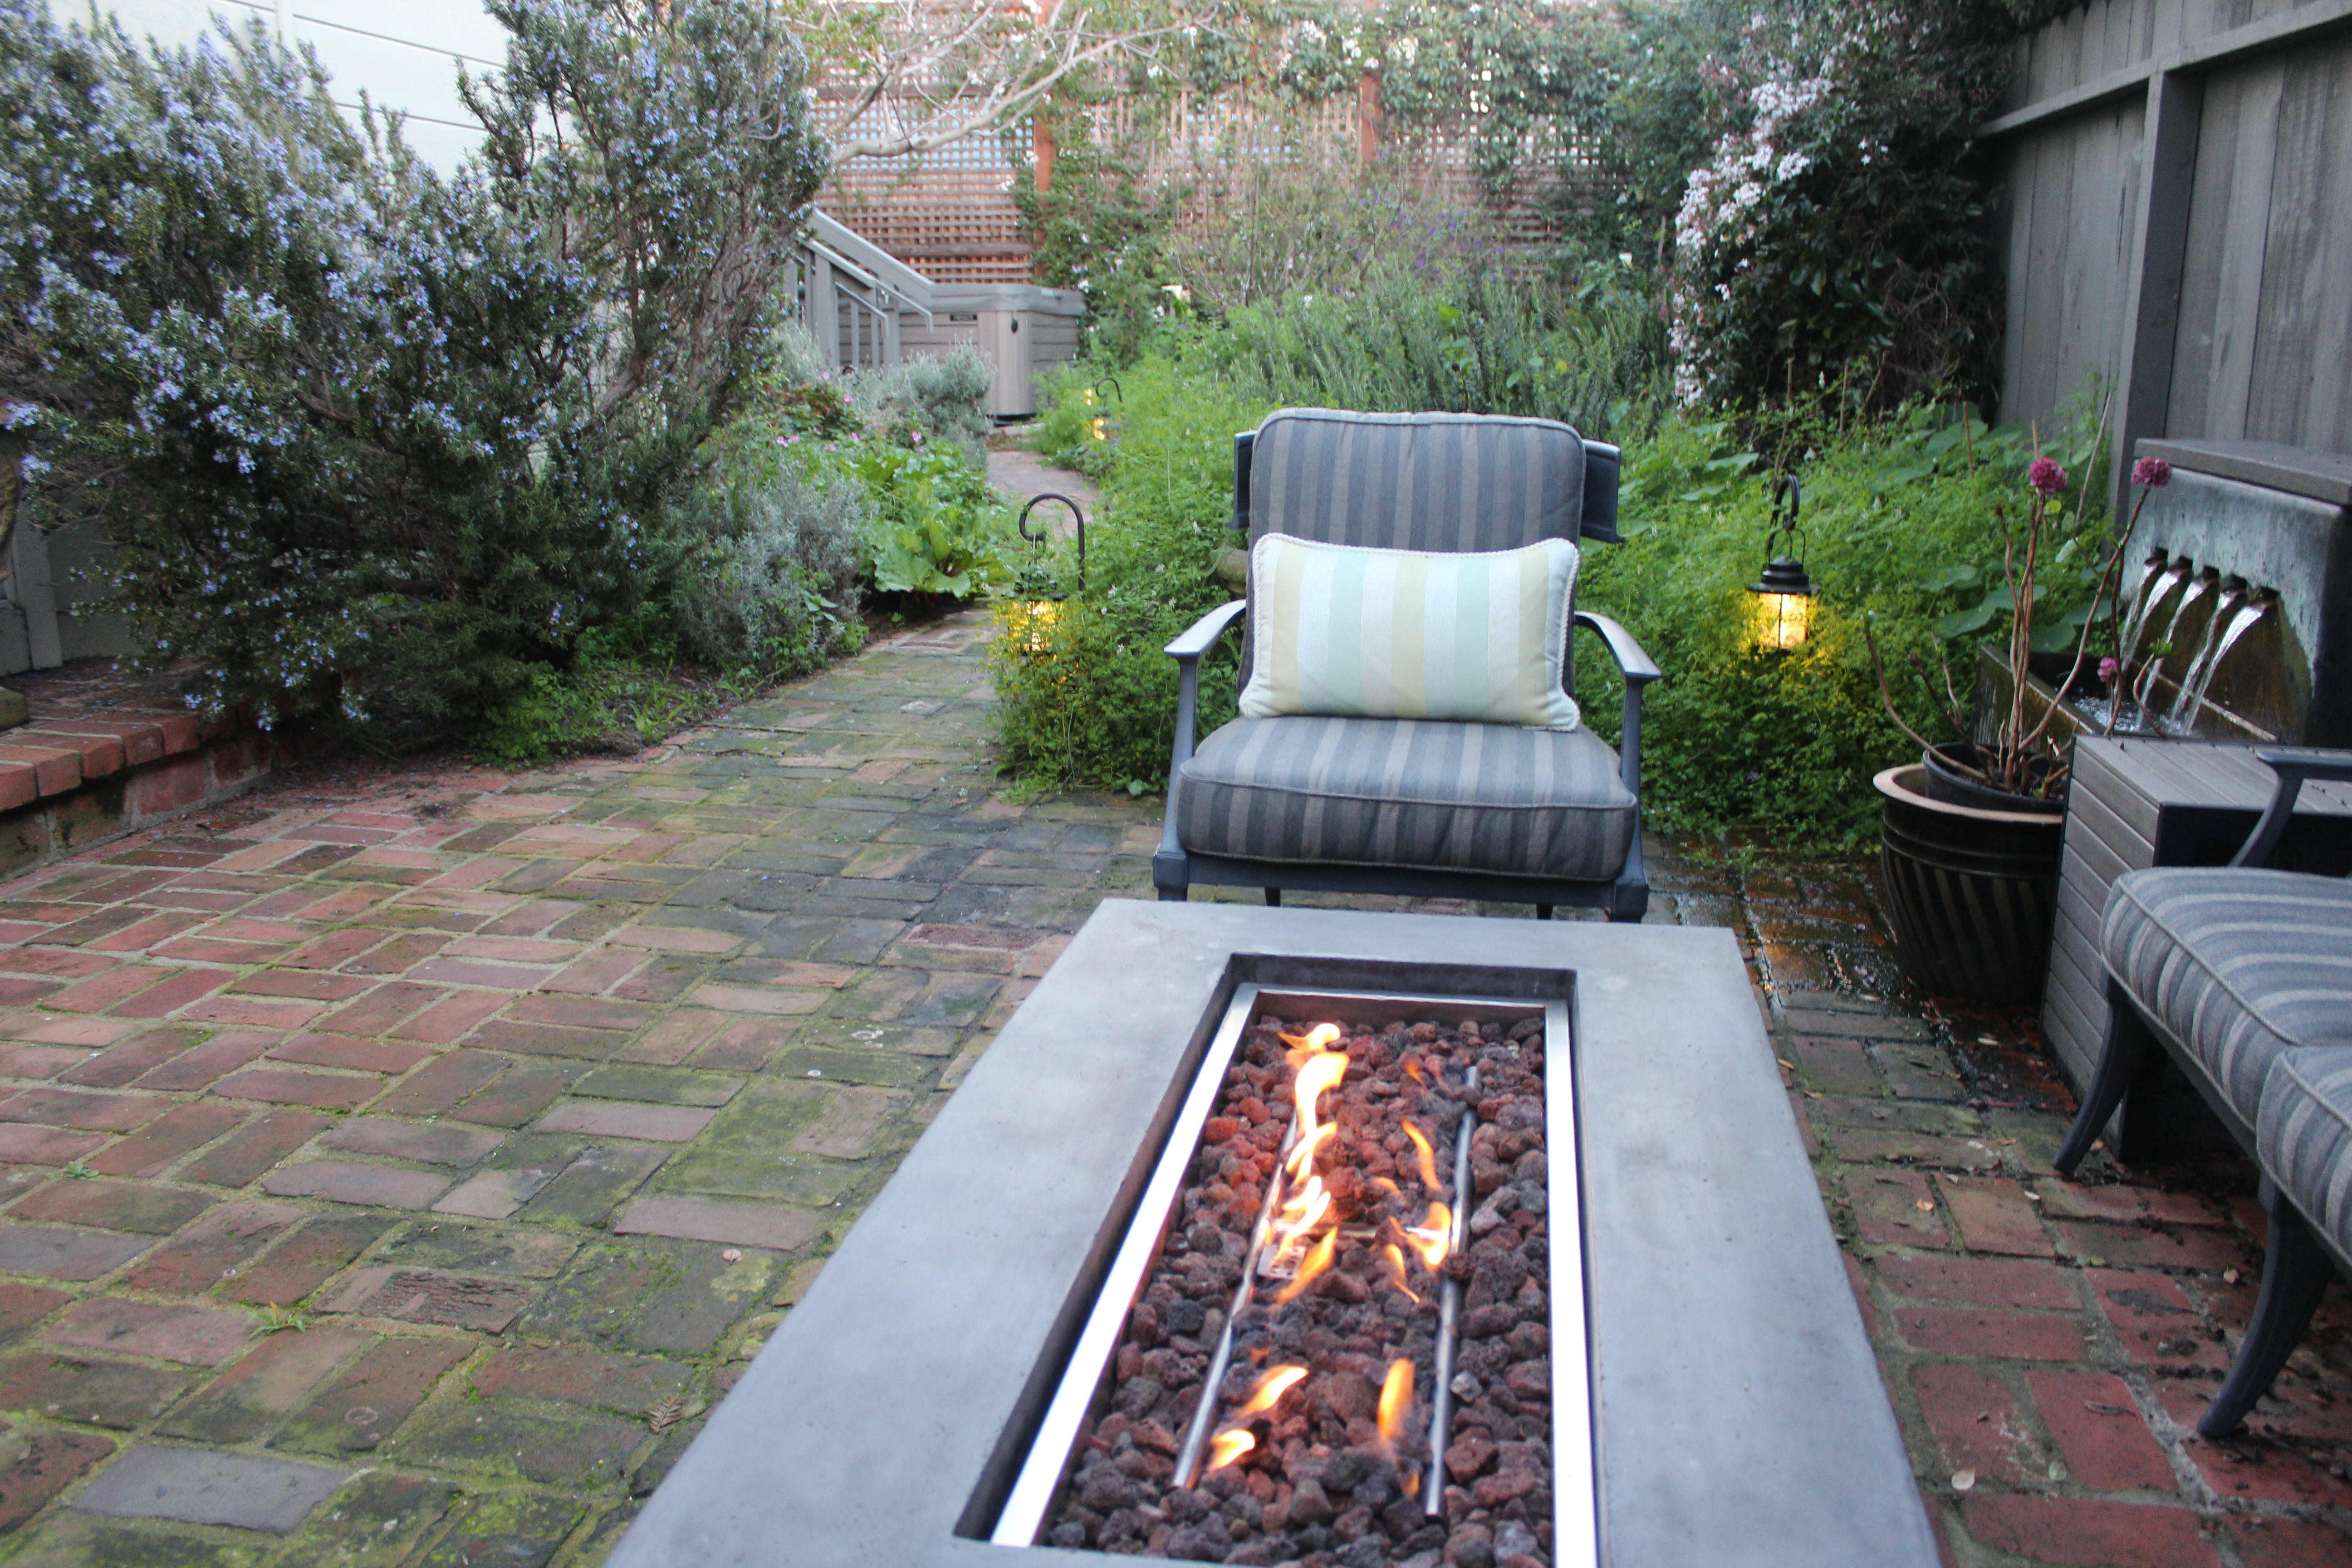 Fire Table in Garden sitting area